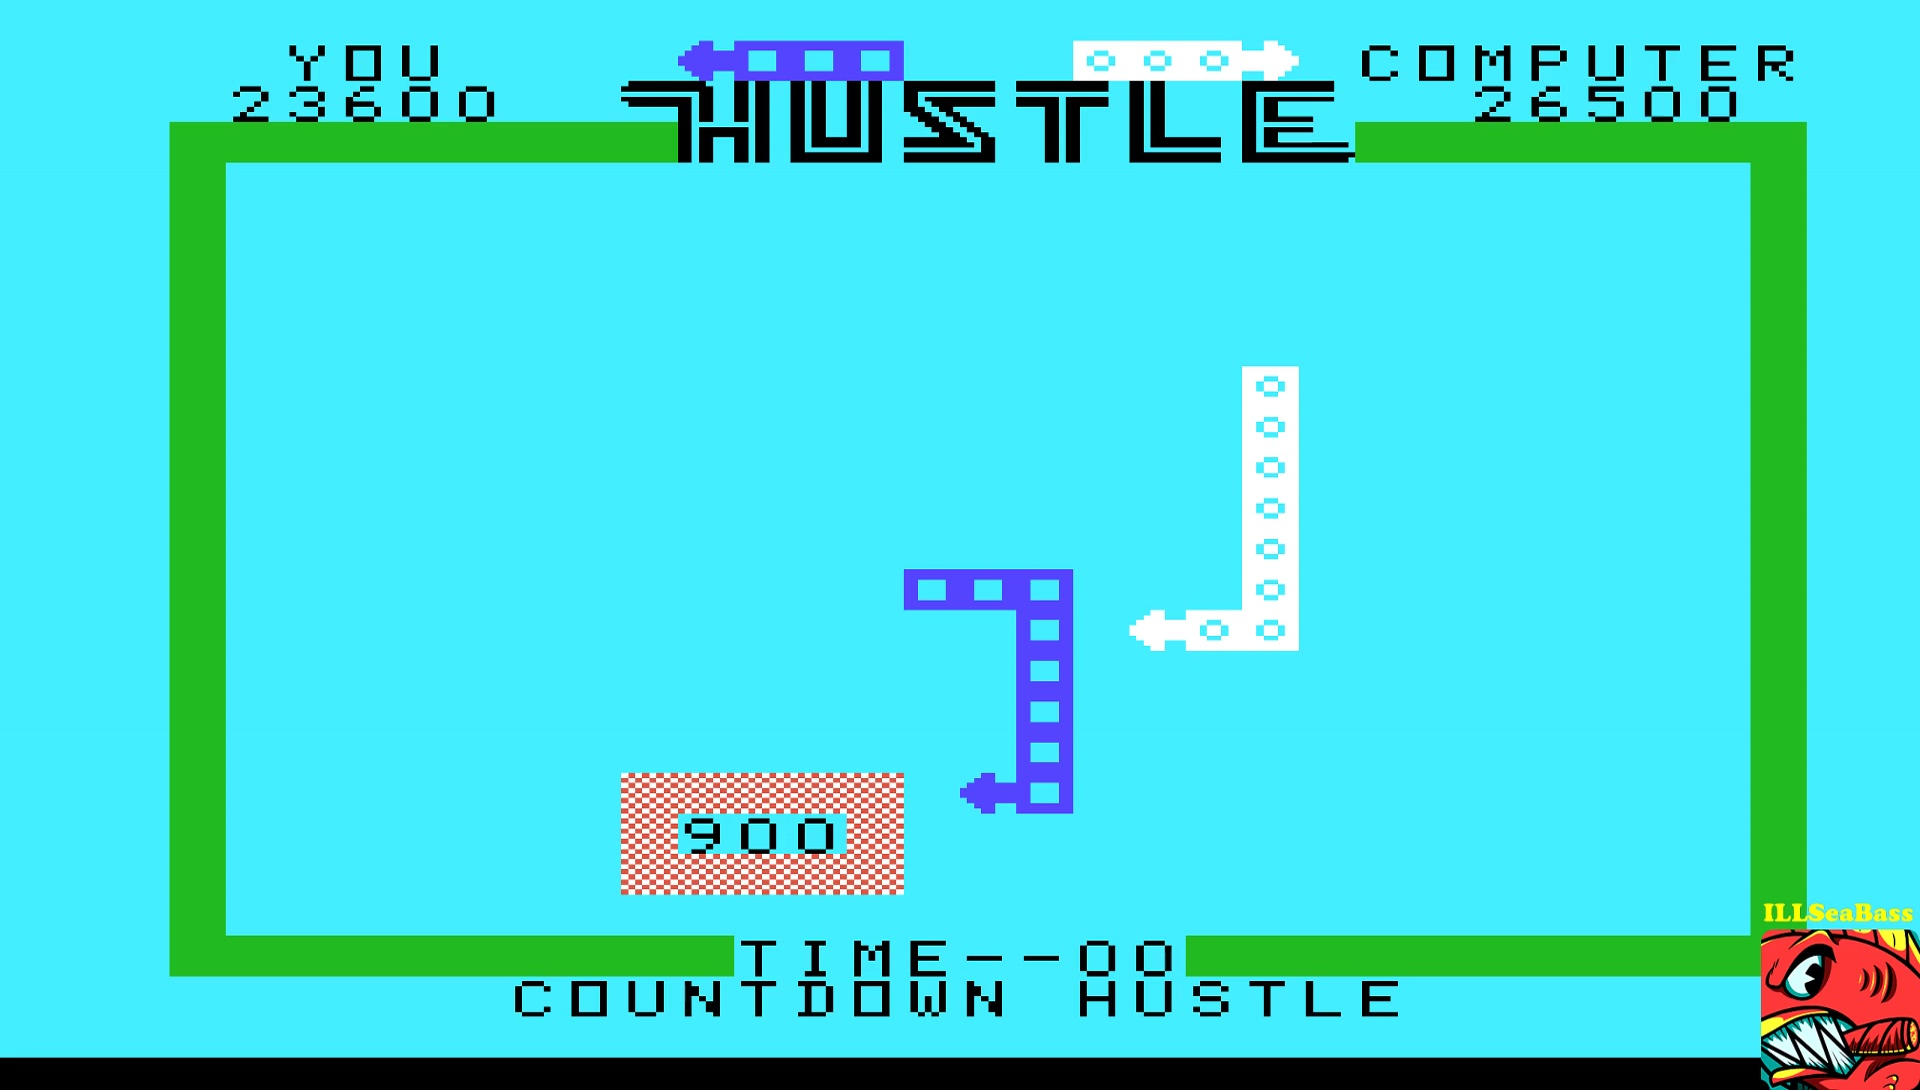 ILLSeaBass: Hustle [Countdown: Hustler] (TI 99/4A Emulated) 23,600 points on 2017-05-12 00:32:01